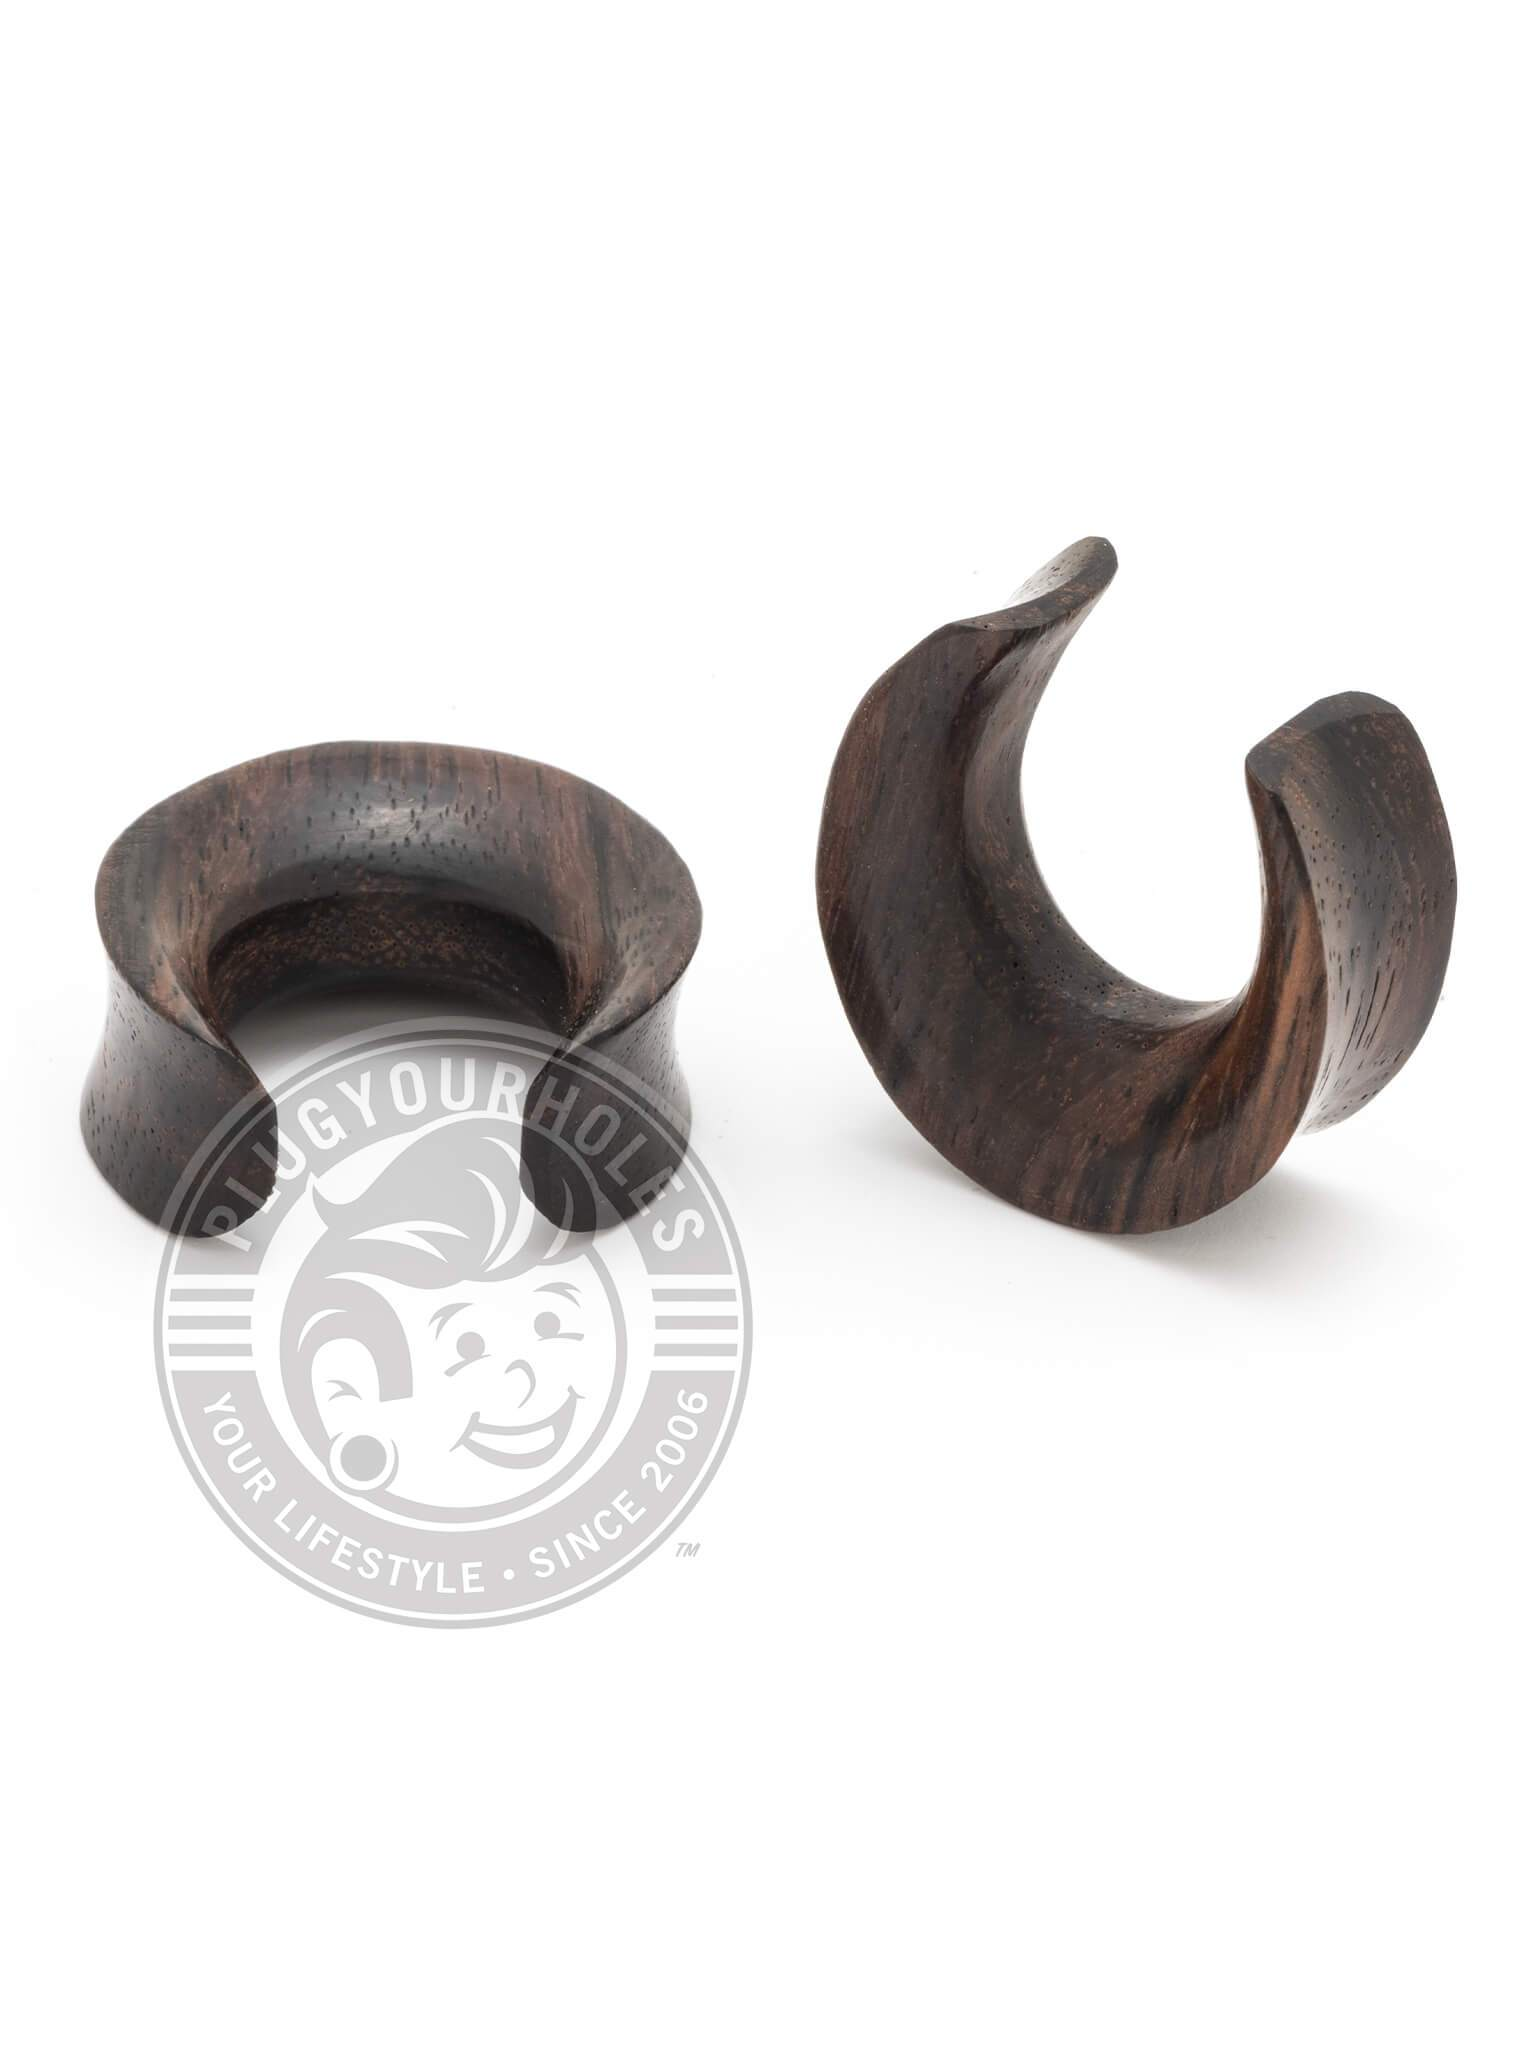 Sono Wood Crescent Saddles